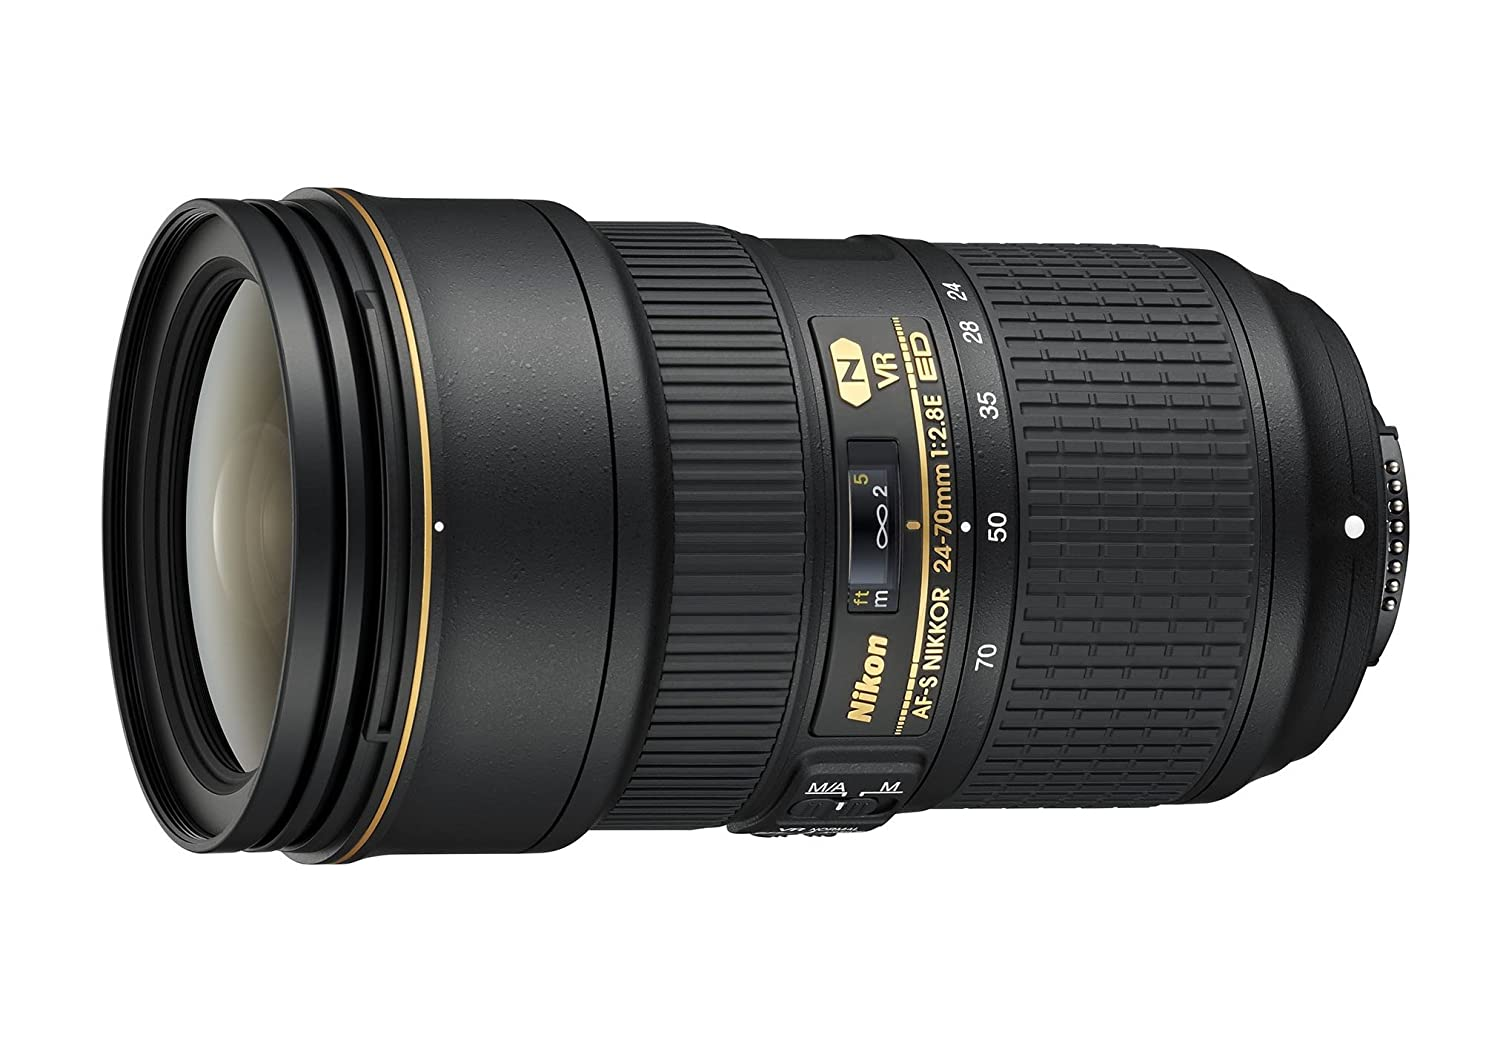 Nikon AF-S FX NIKKOR 24-70mm f/2.8E ED Vibration Reduction Zoom Lens with Auto Focus for Nikon DSLR Cameras